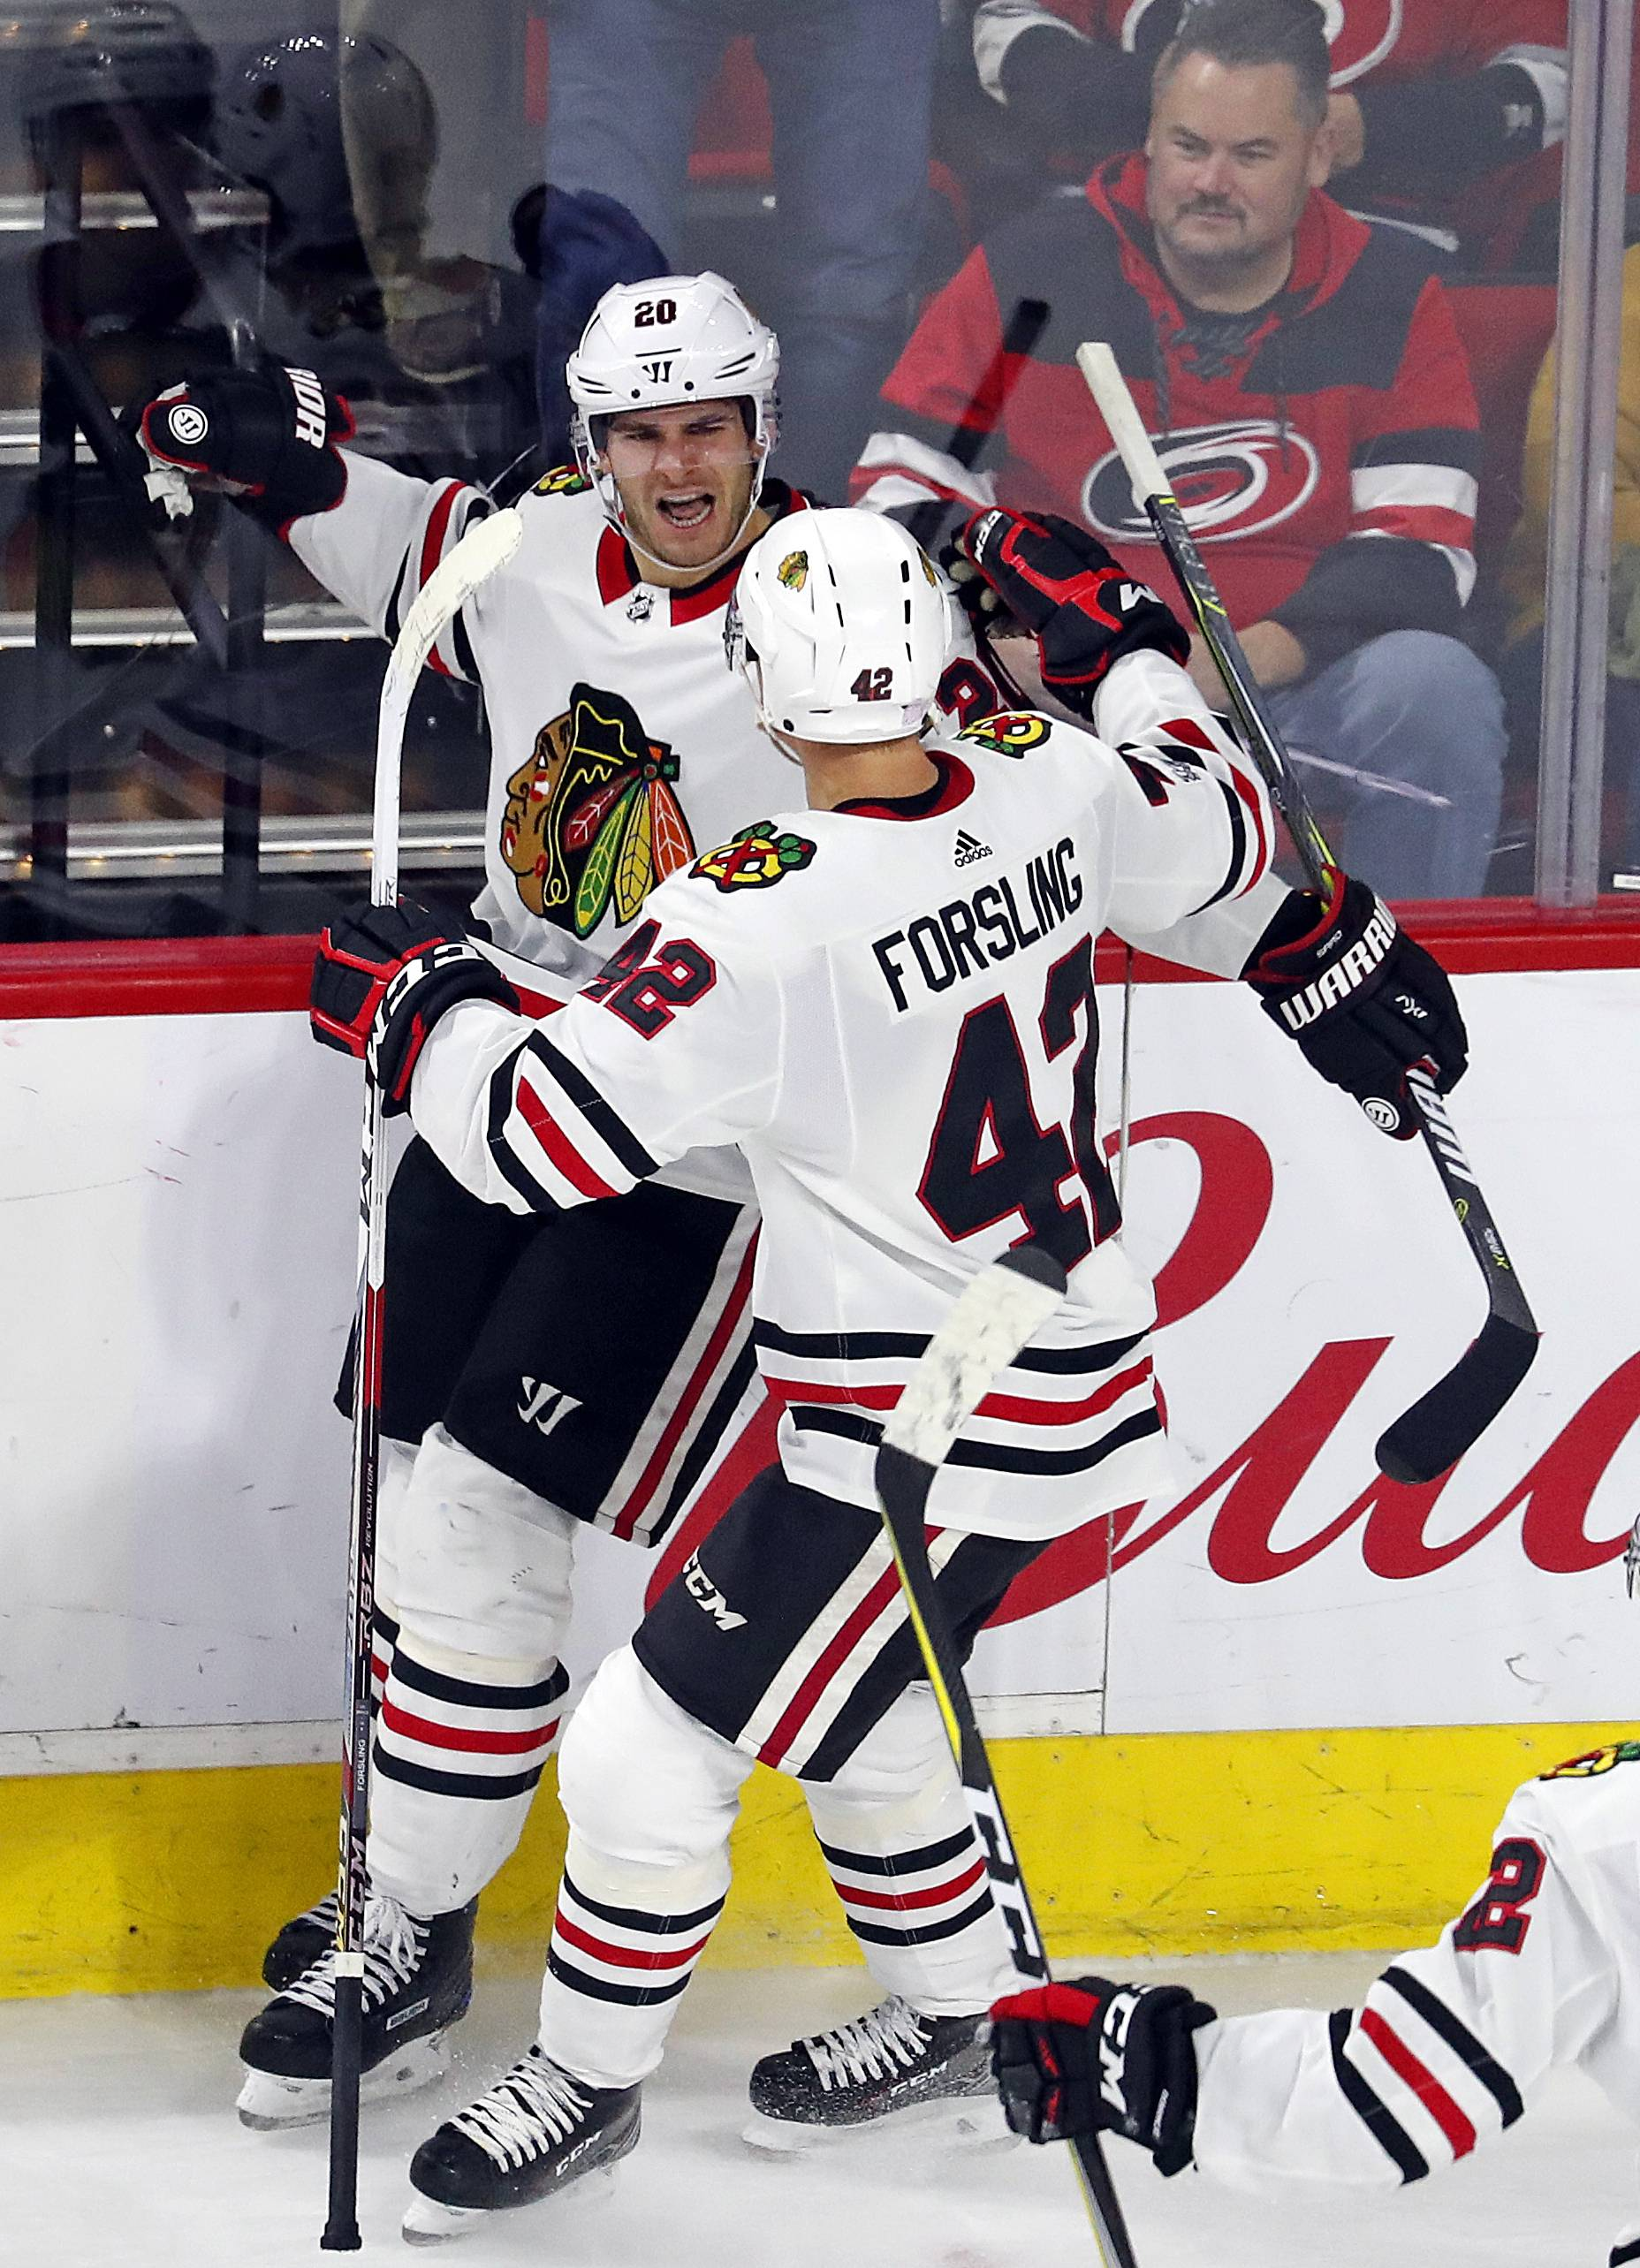 Chicago Blackhawks' Brandon Saad (20) celebrates his winning goal against the Carolina Hurricanes with teammate Gustav Forsling (42) during the overtime period of an NHL hockey game, Saturday, Nov. 11, 2017, in Raleigh, N.C.